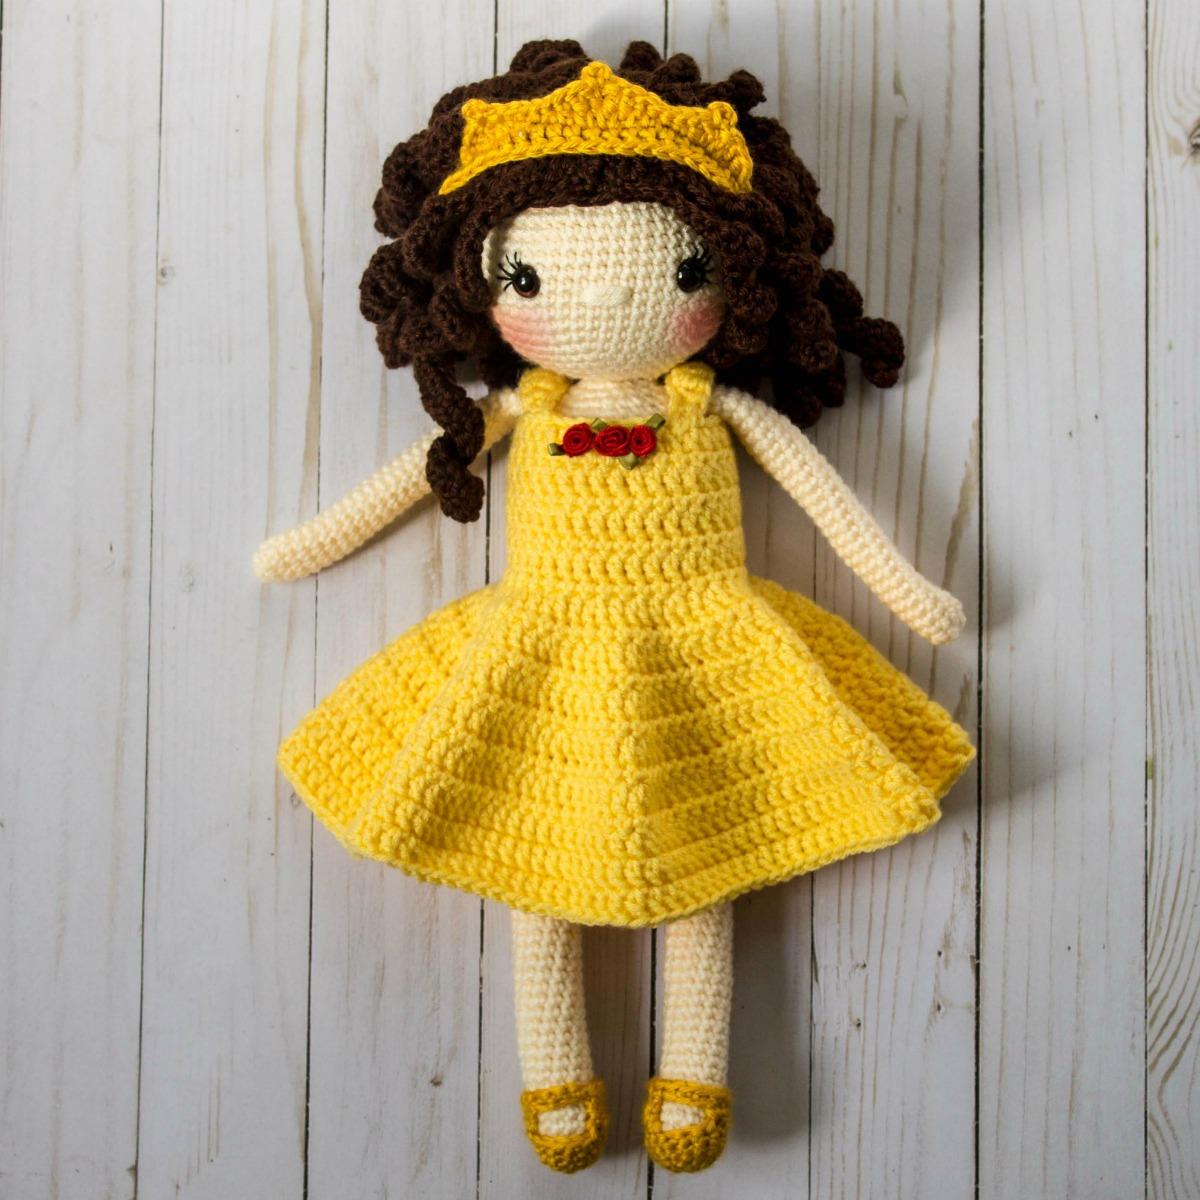 Crochet Princess Doll Pattern - thefriendlyredfox.com